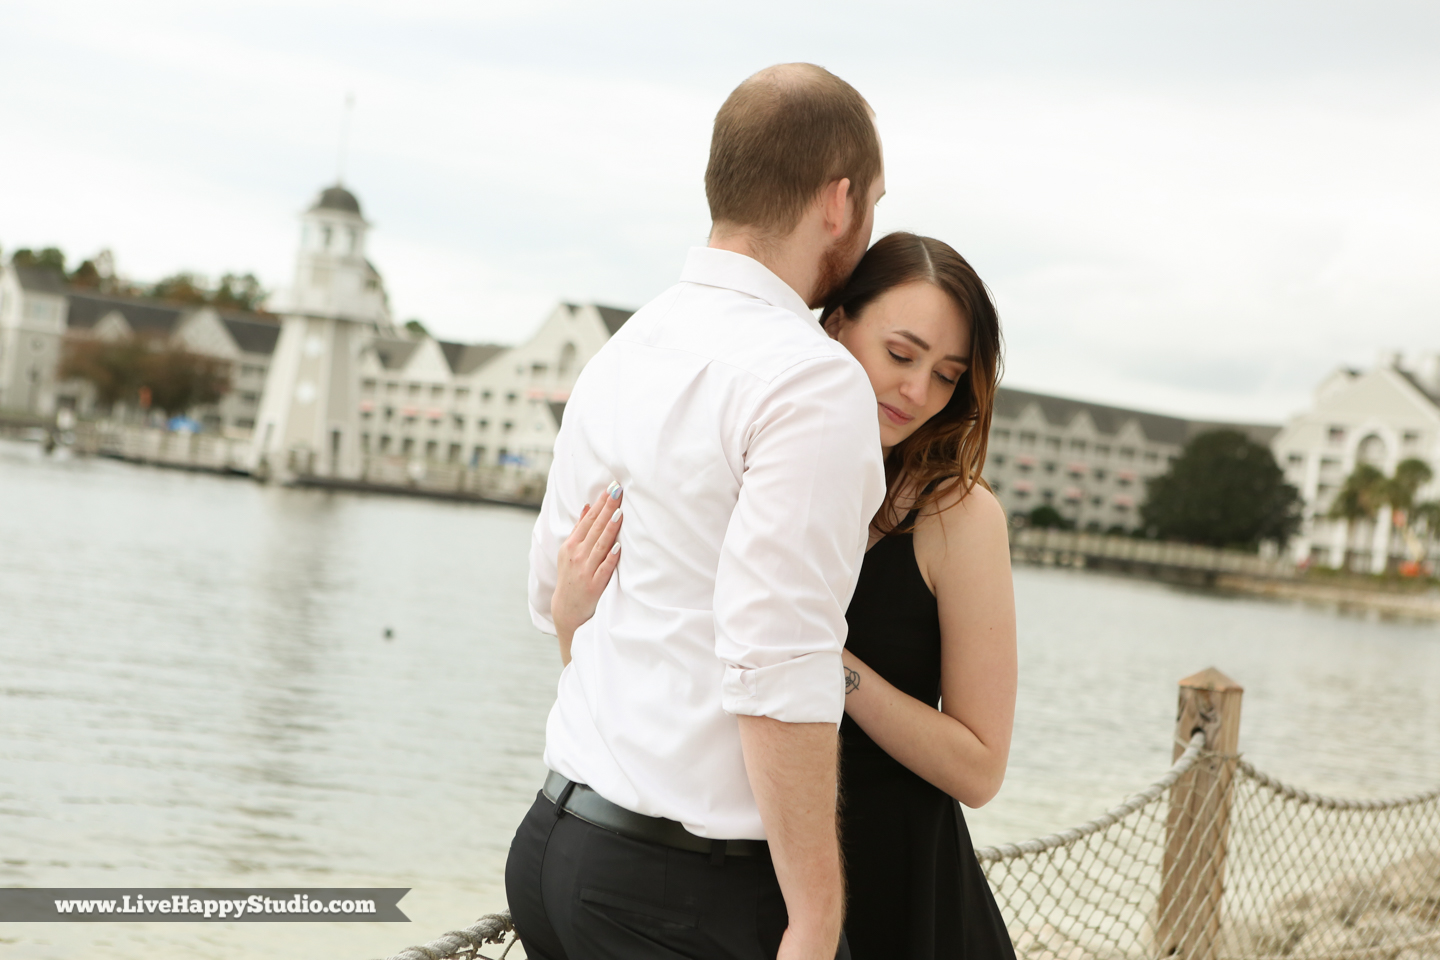 engagement-photographer-orlando-disney-photography-live-happy-studio-16.jpg